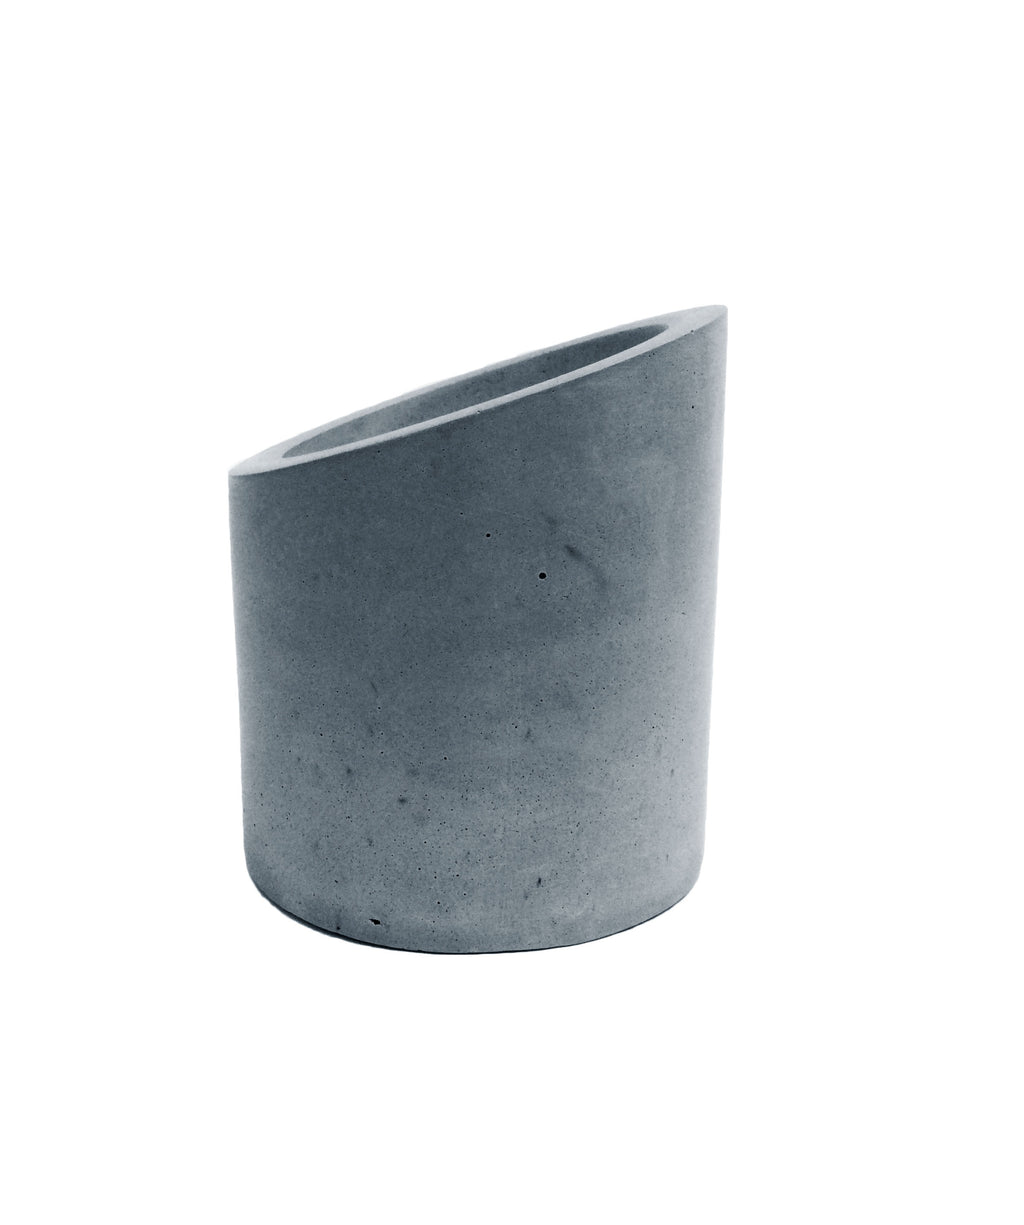 Concrete Candle - AboutRuby.com